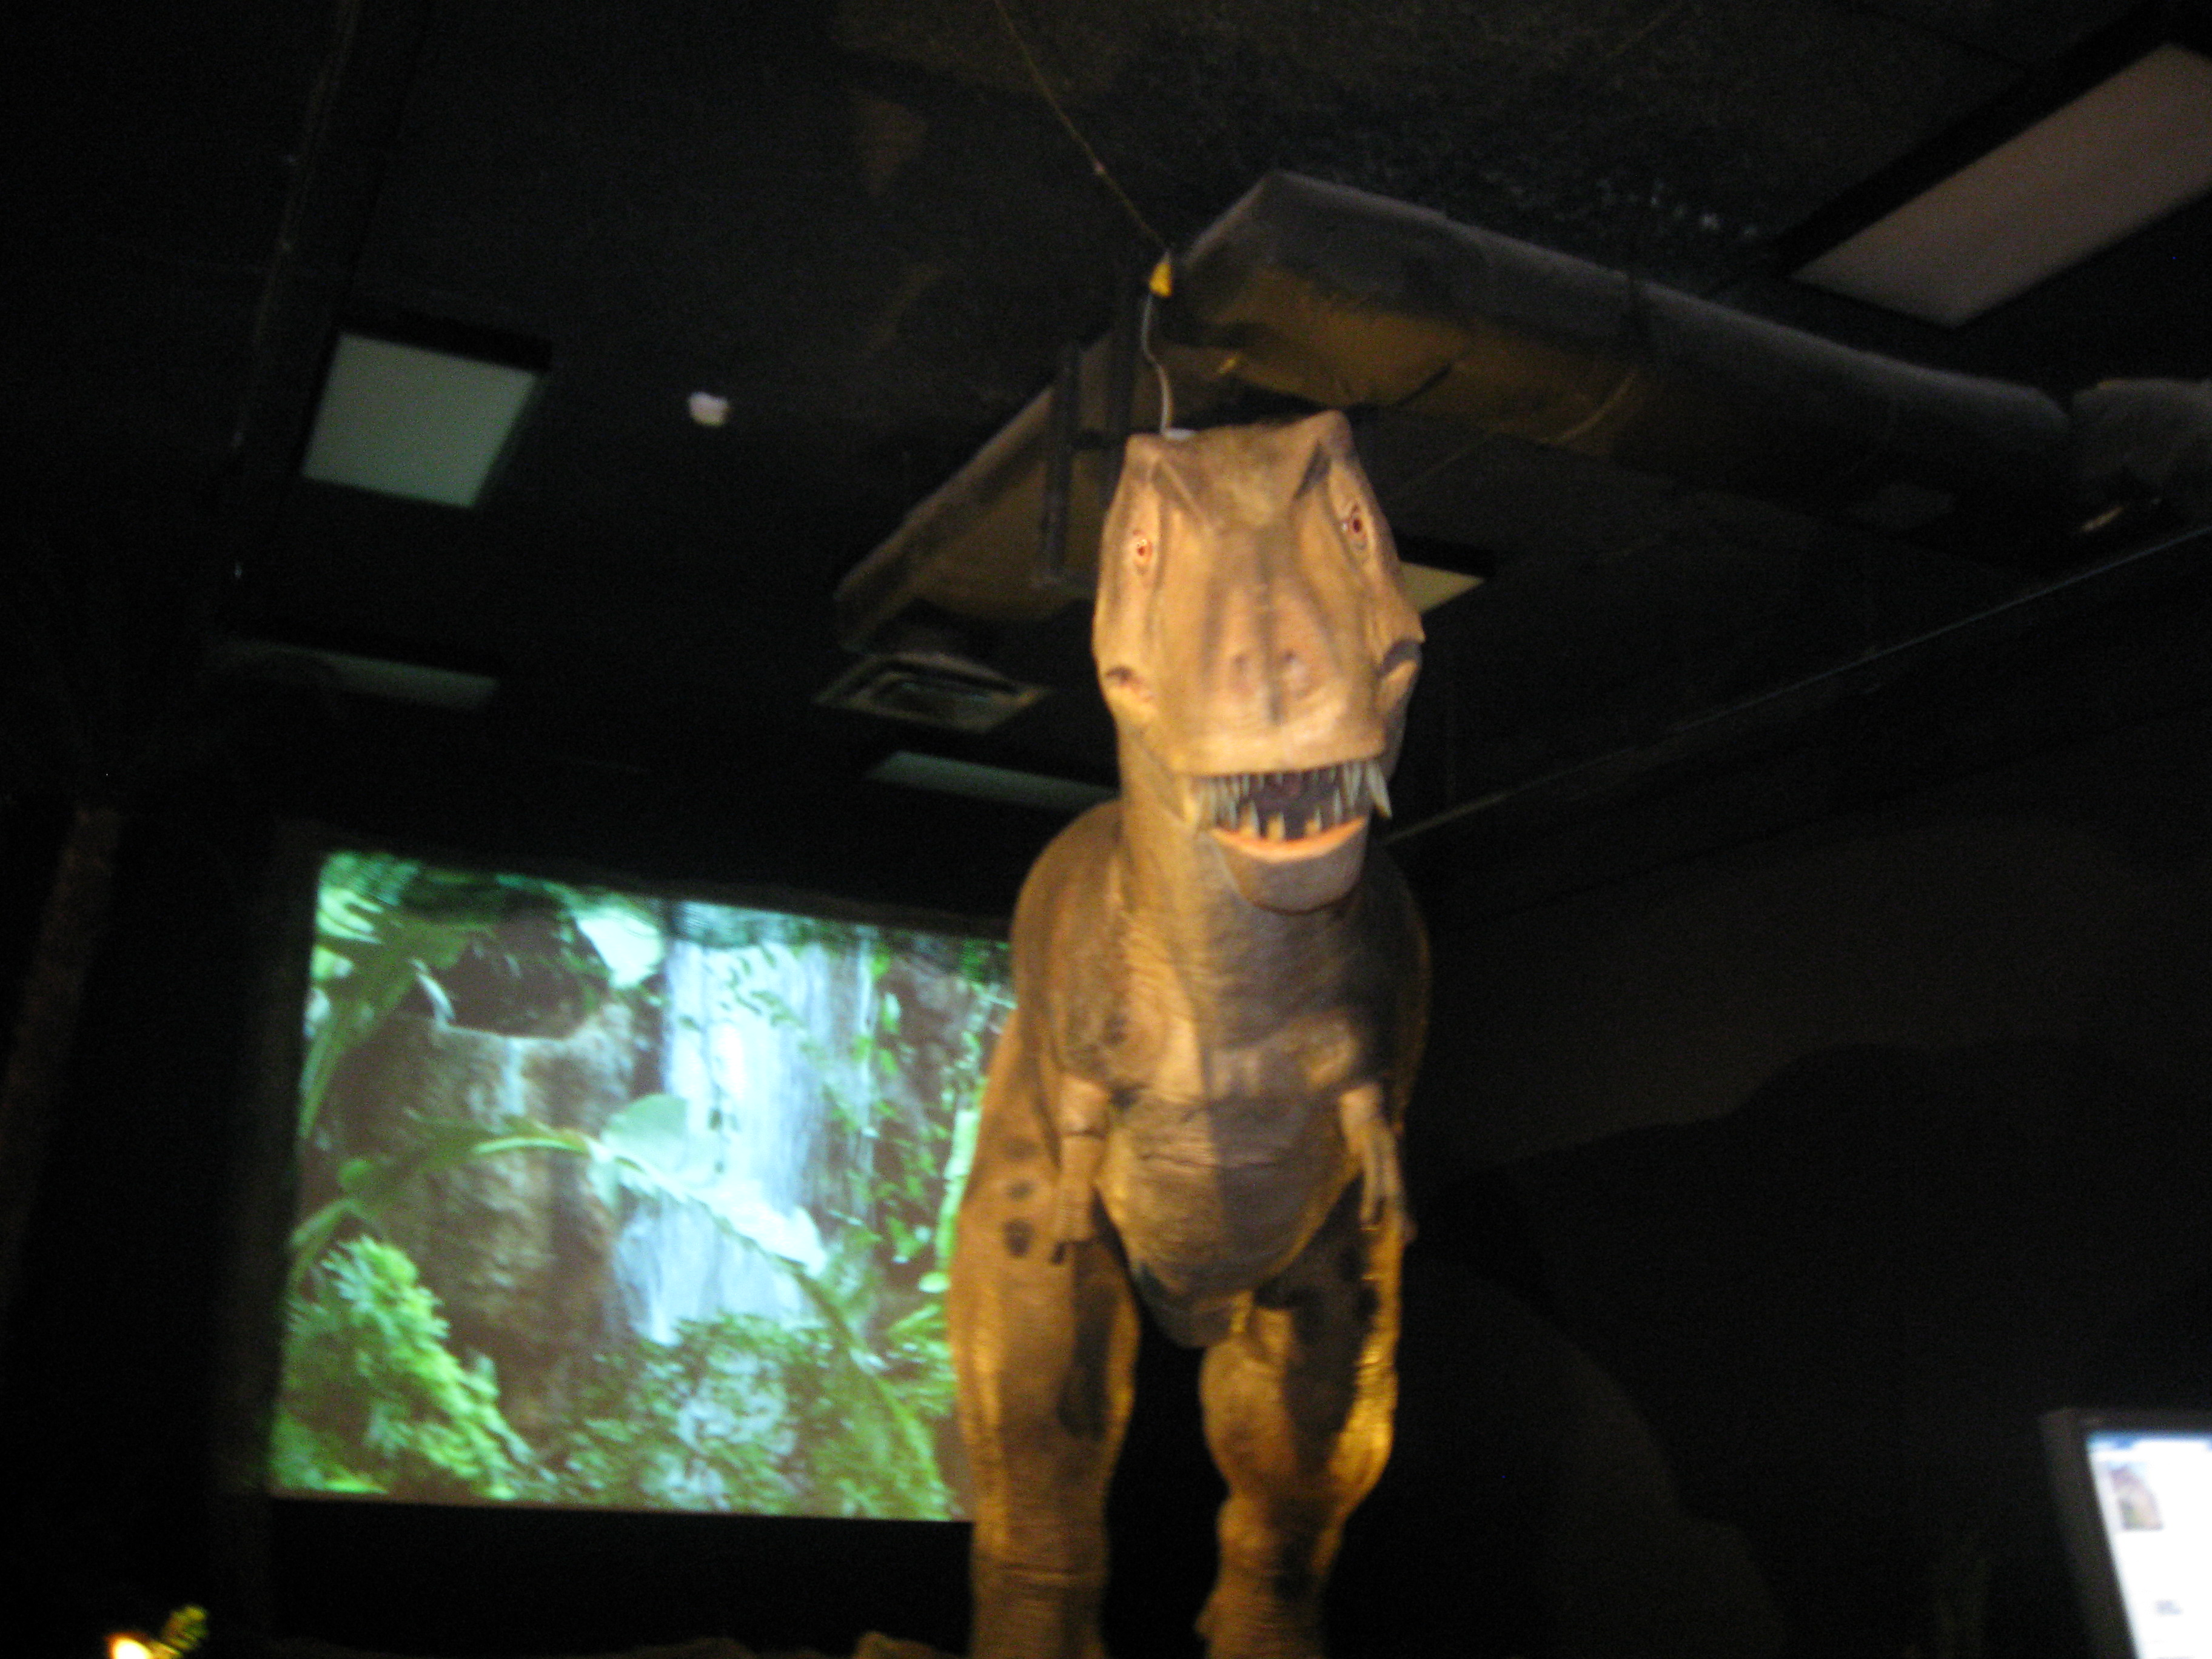 T-Rex has his own Facebook Fan page